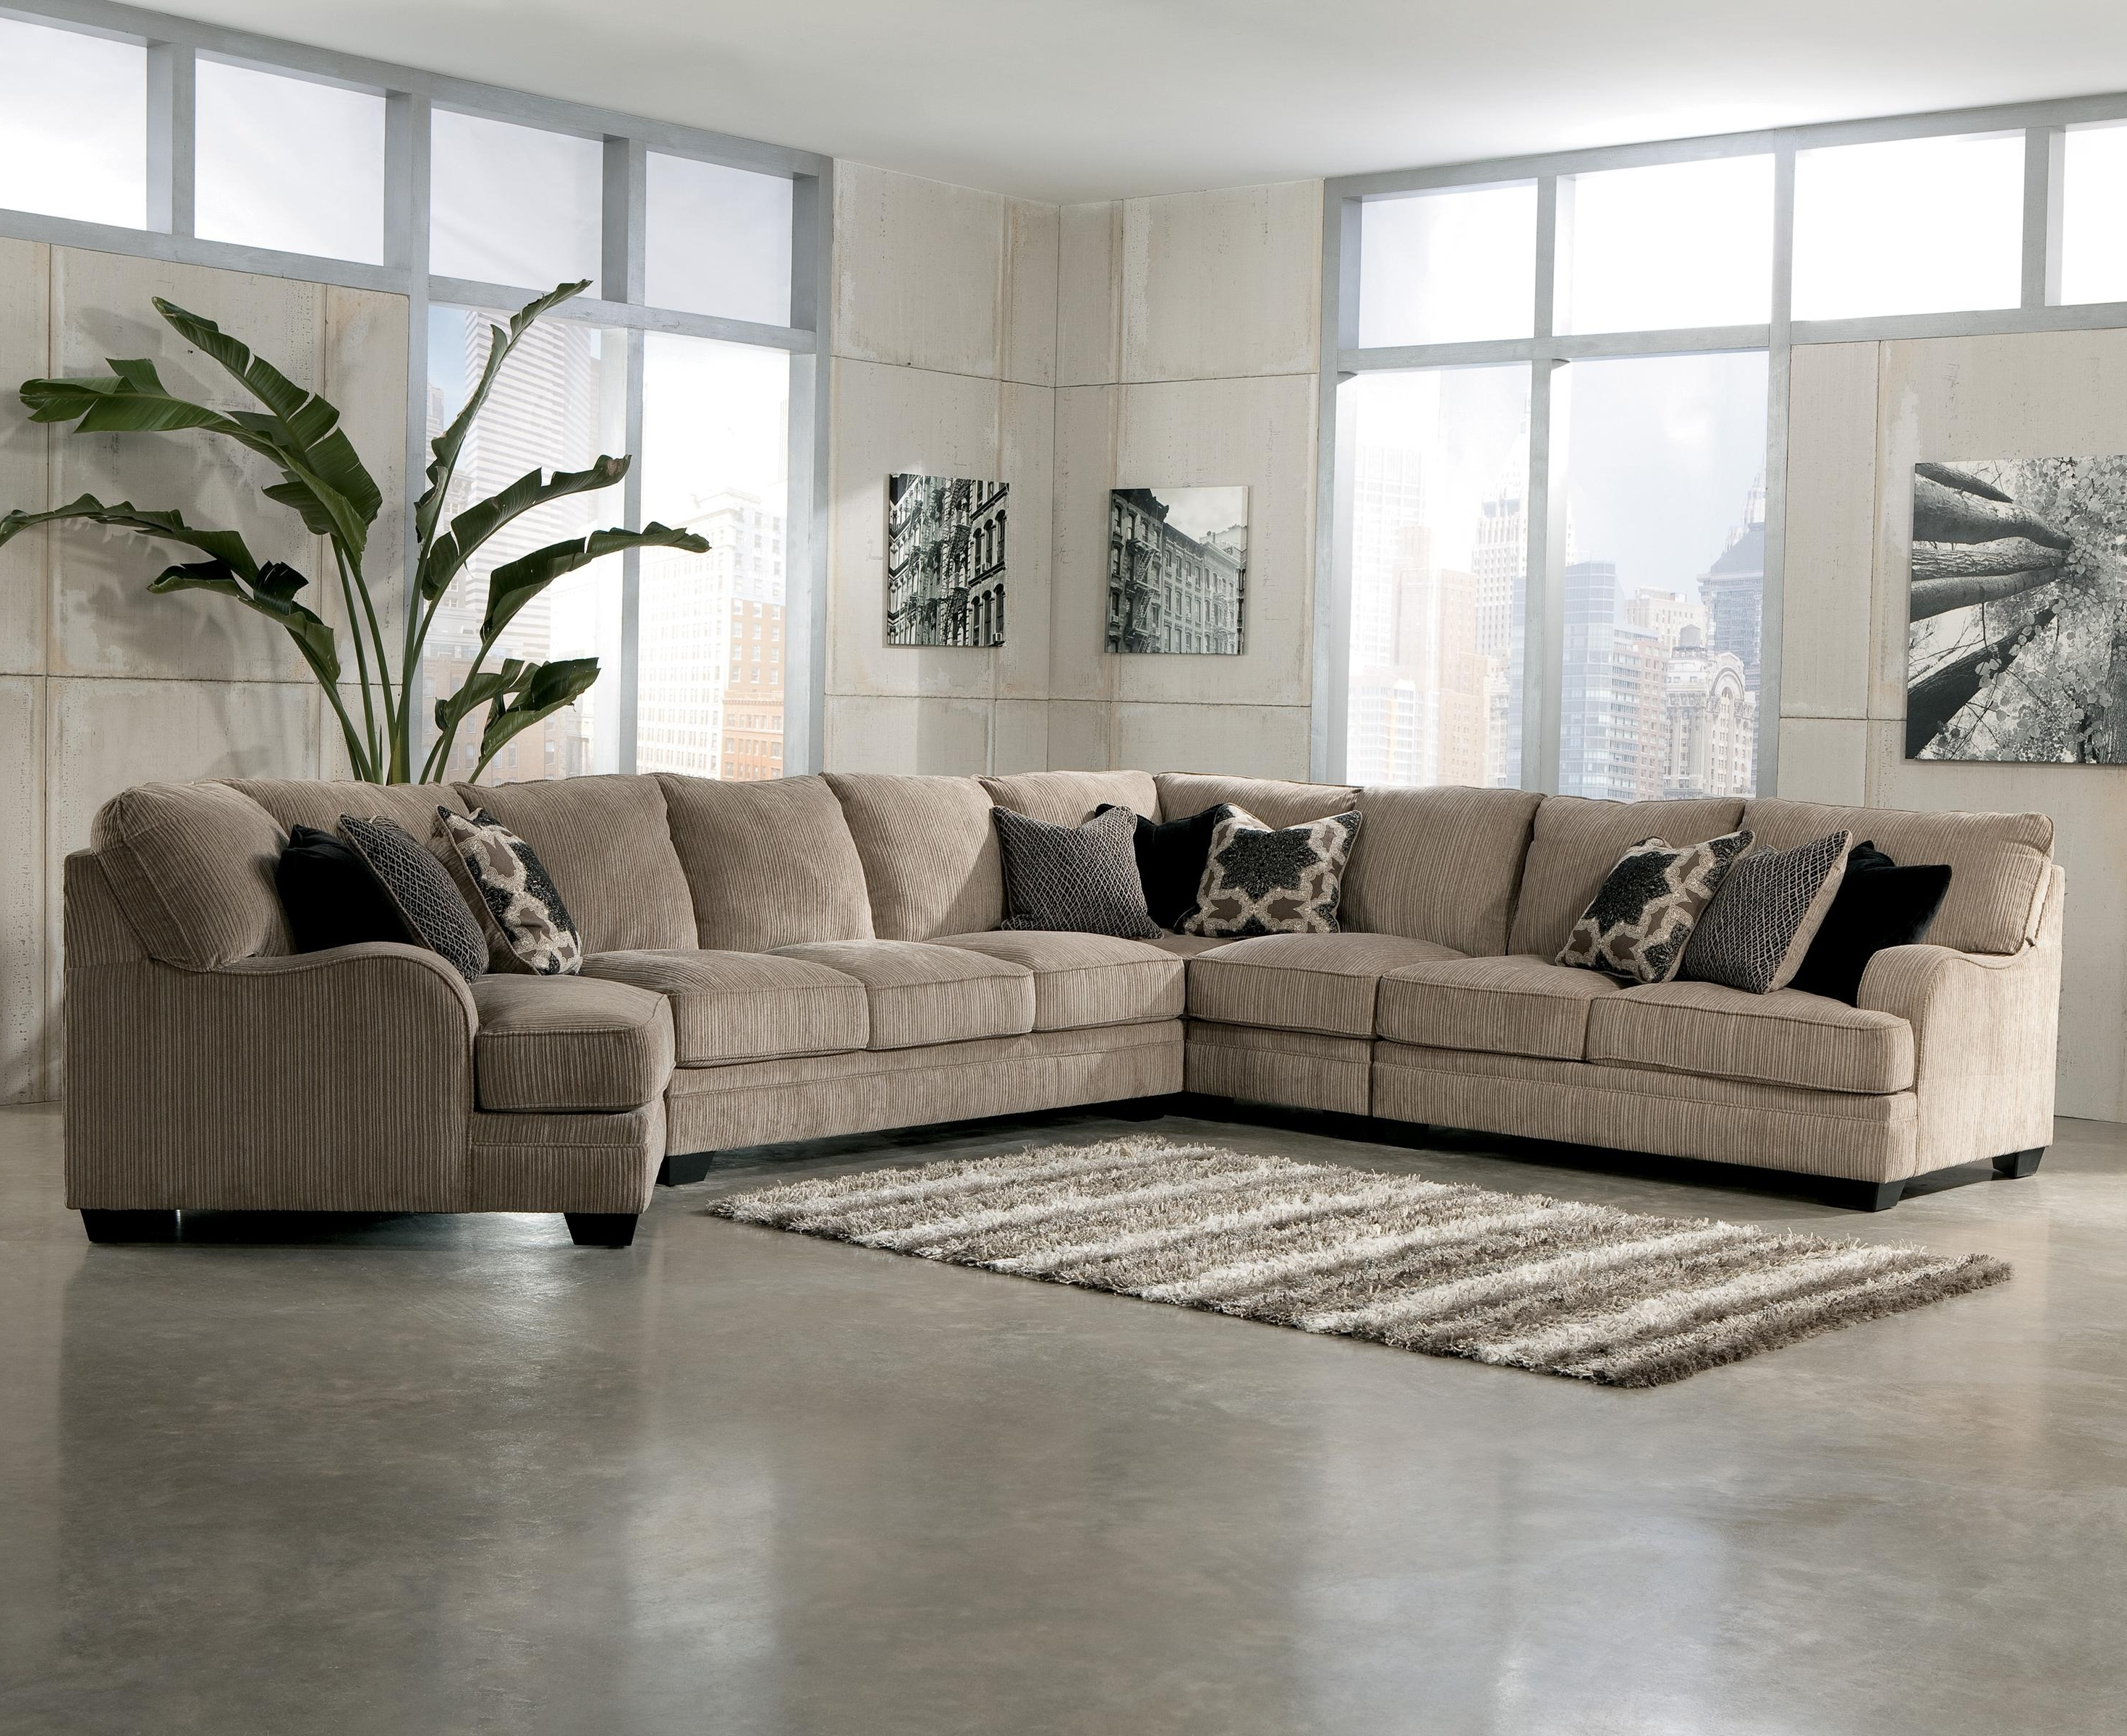 Signature Designashley Katisha – Platinum 5 Piece Sectional Pertaining To Widely Used Pittsburgh Sectional Sofas (View 16 of 20)